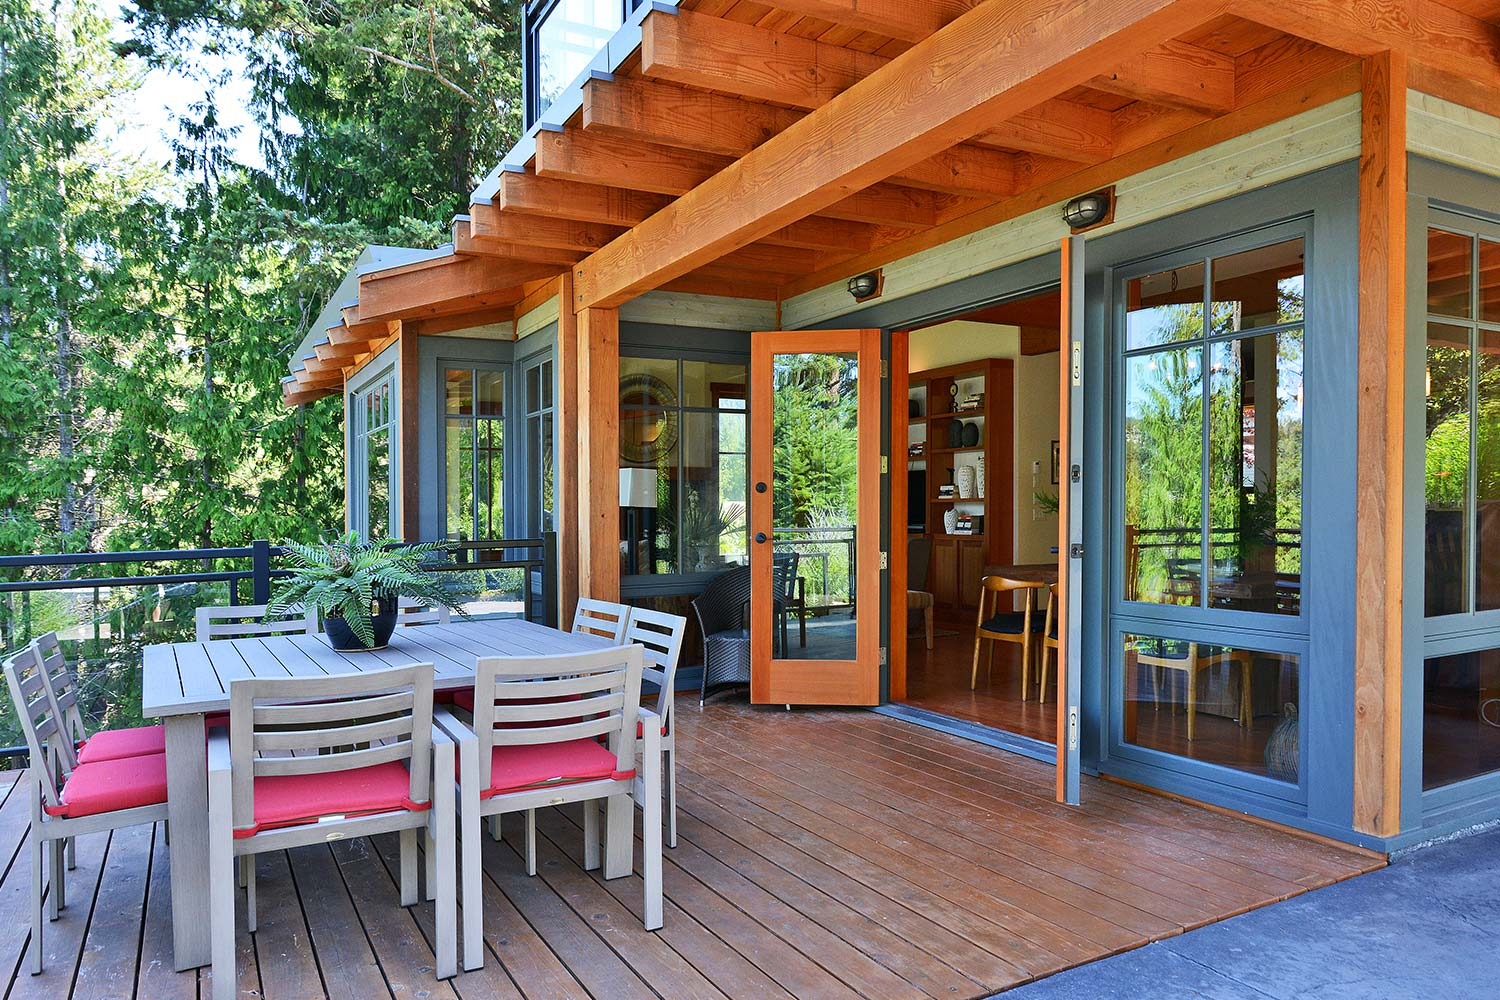 The living area opens up onto the large front deck where the outdoor dining area of this luxury vacation house is found.